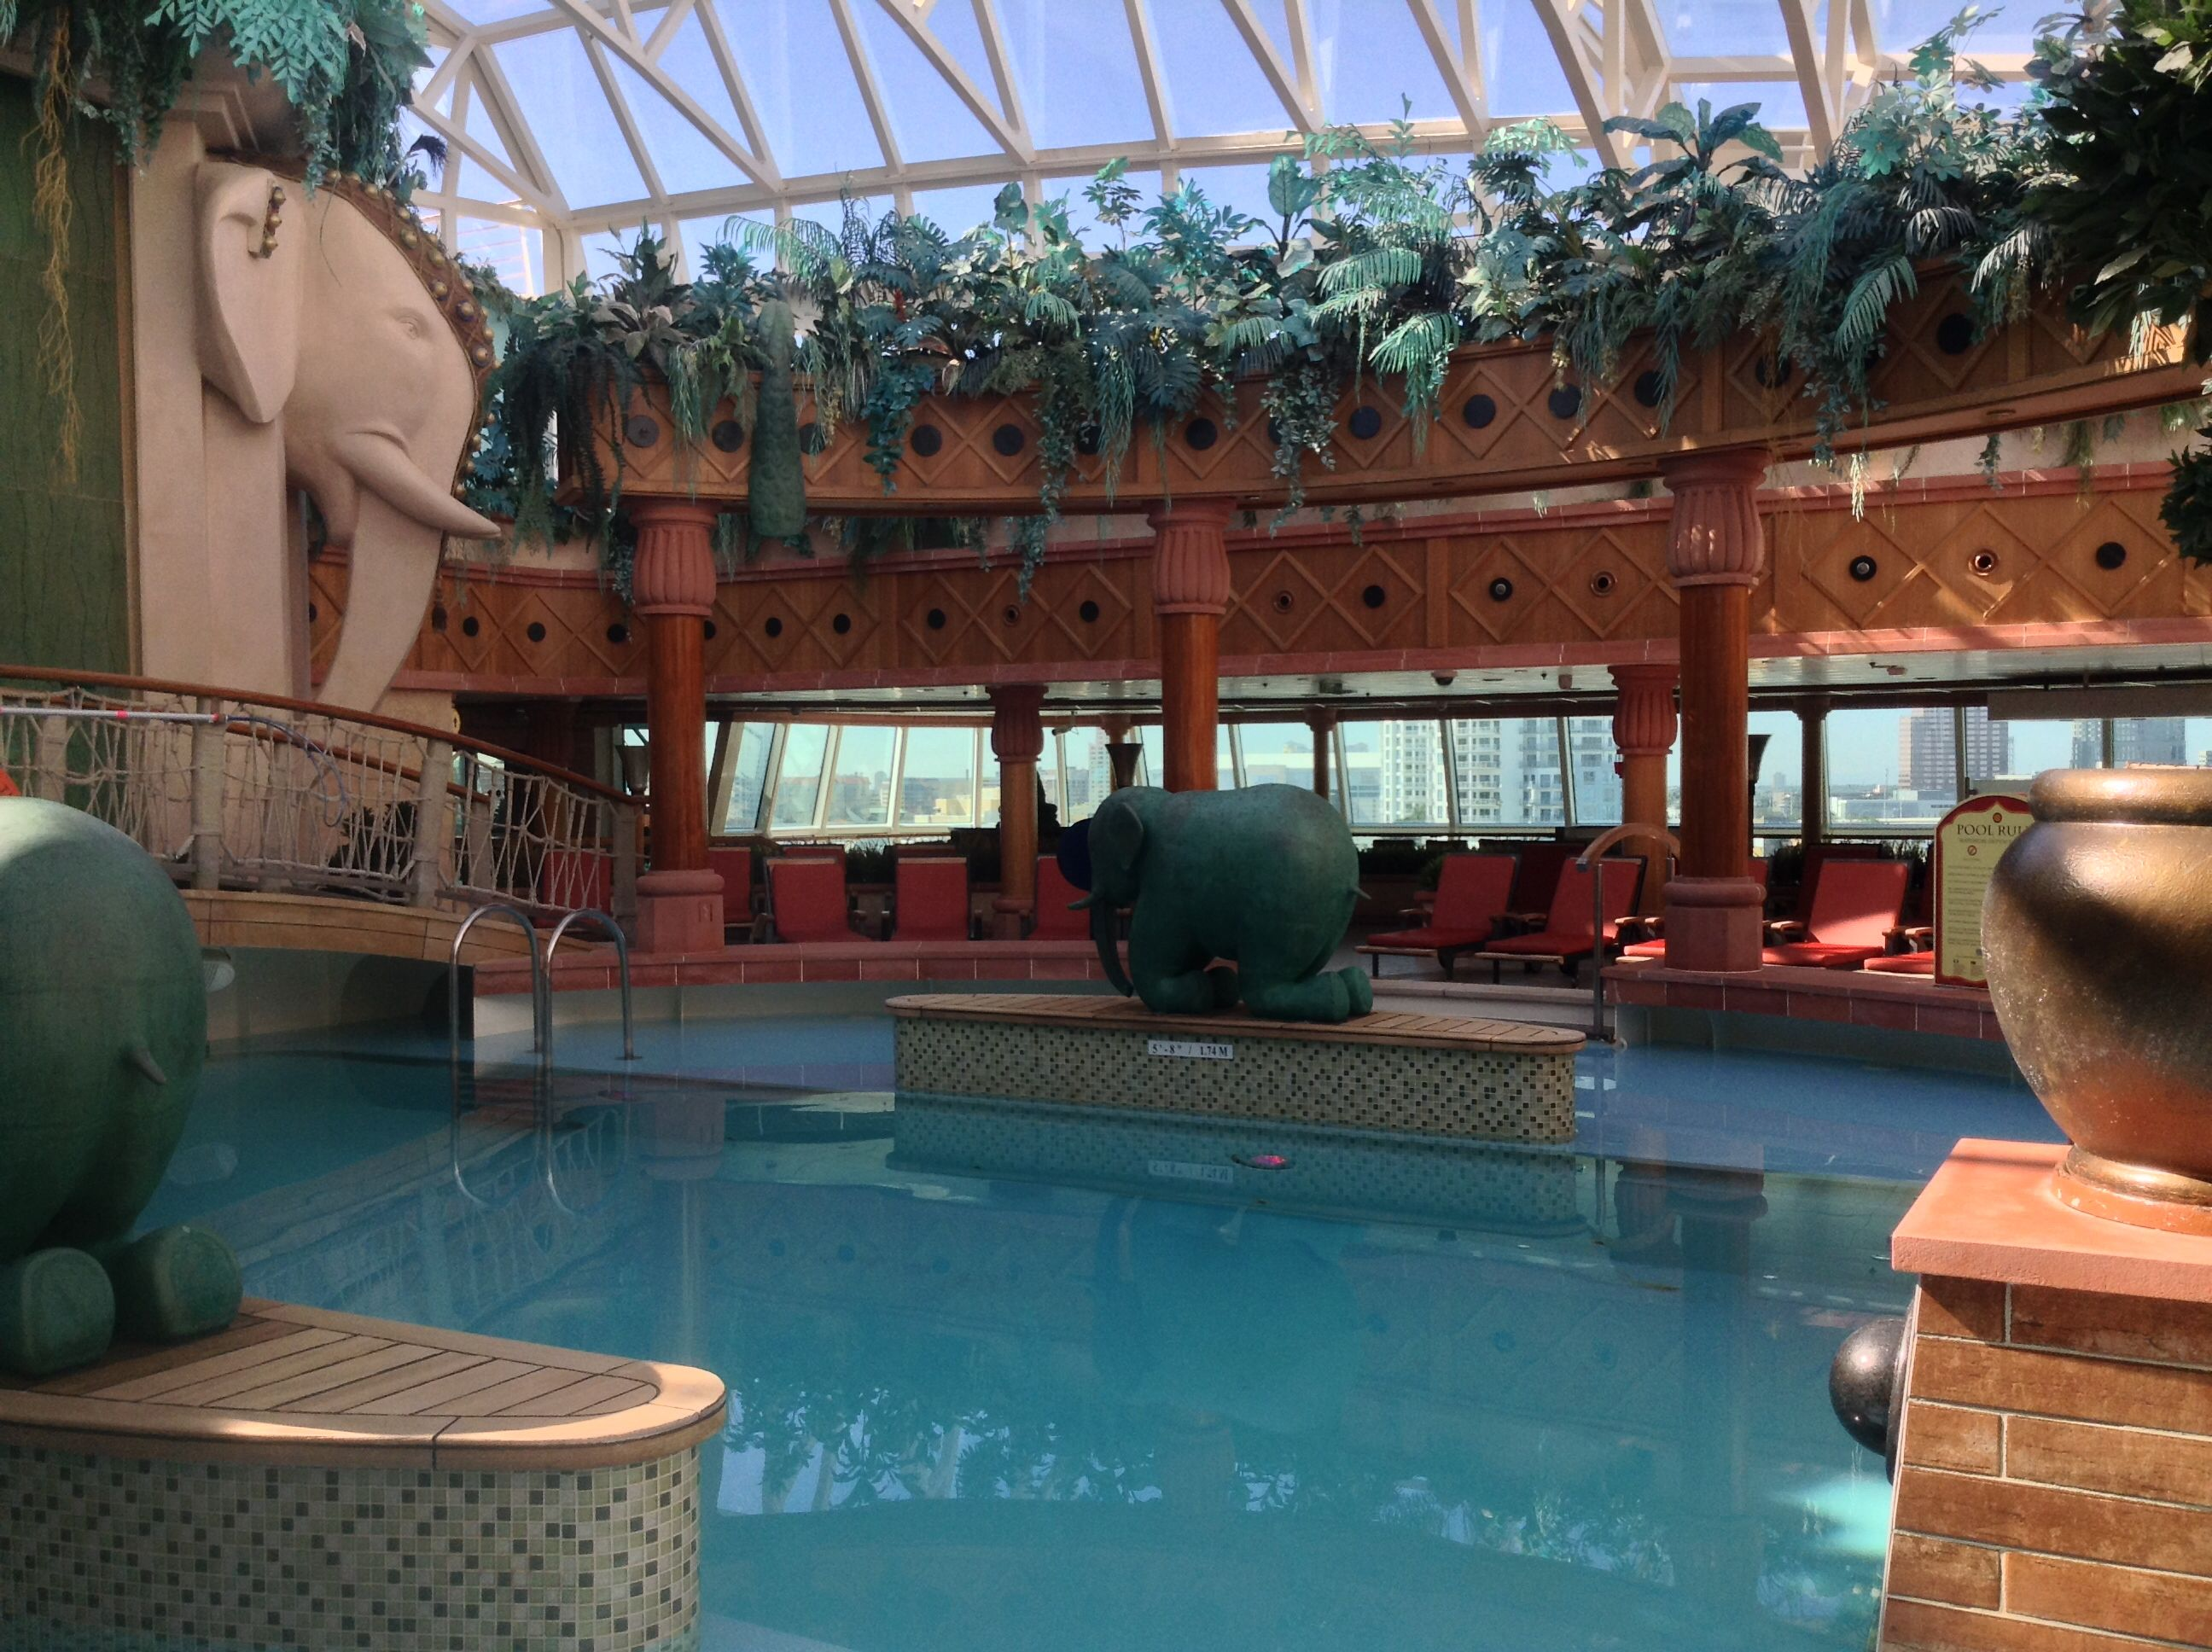 Royal Caribbean Brilliance Of The Sea  Solarium Adult Only Area  Cruise